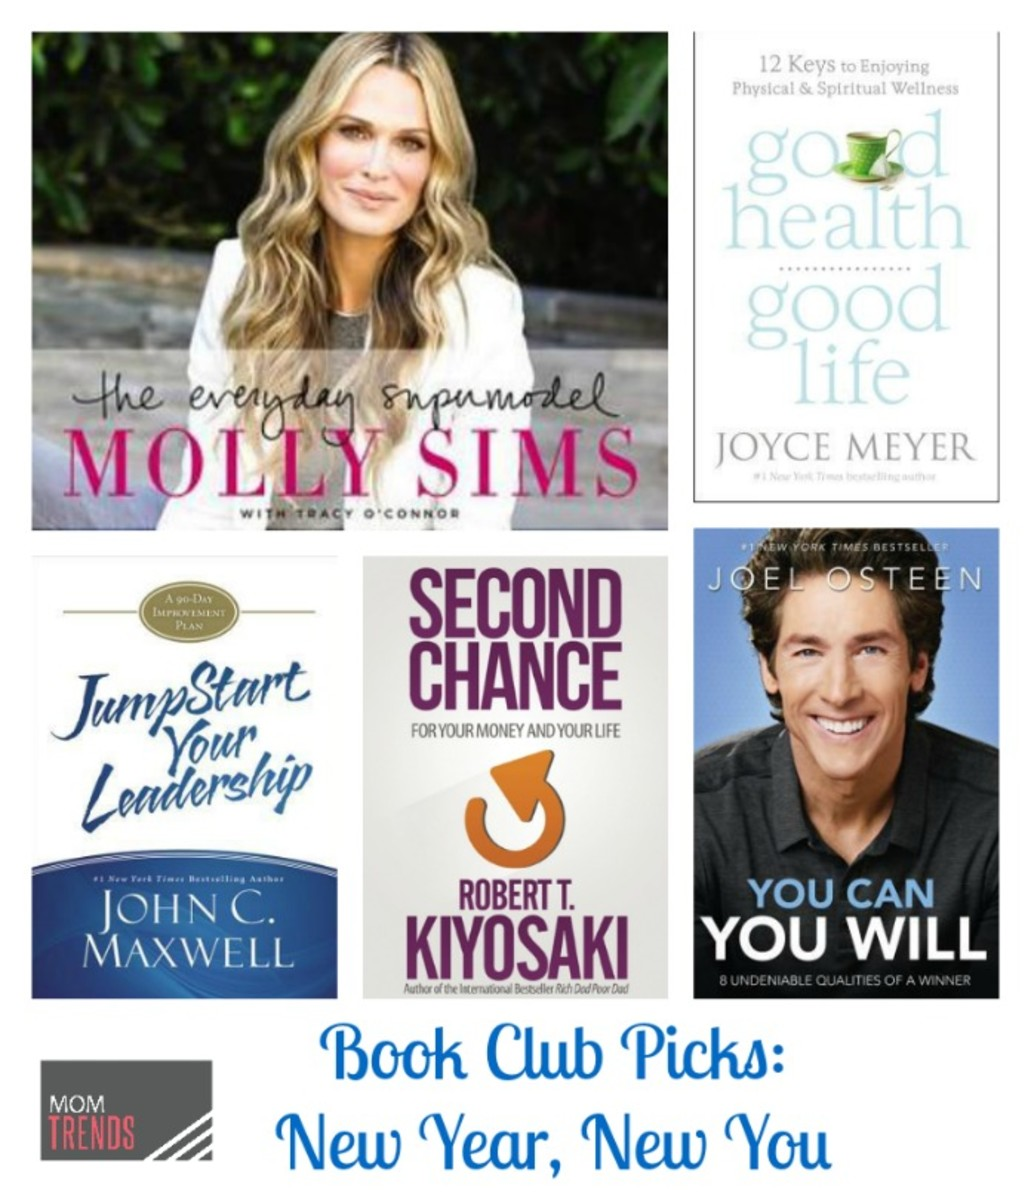 Book Club Picks: New Year, New You